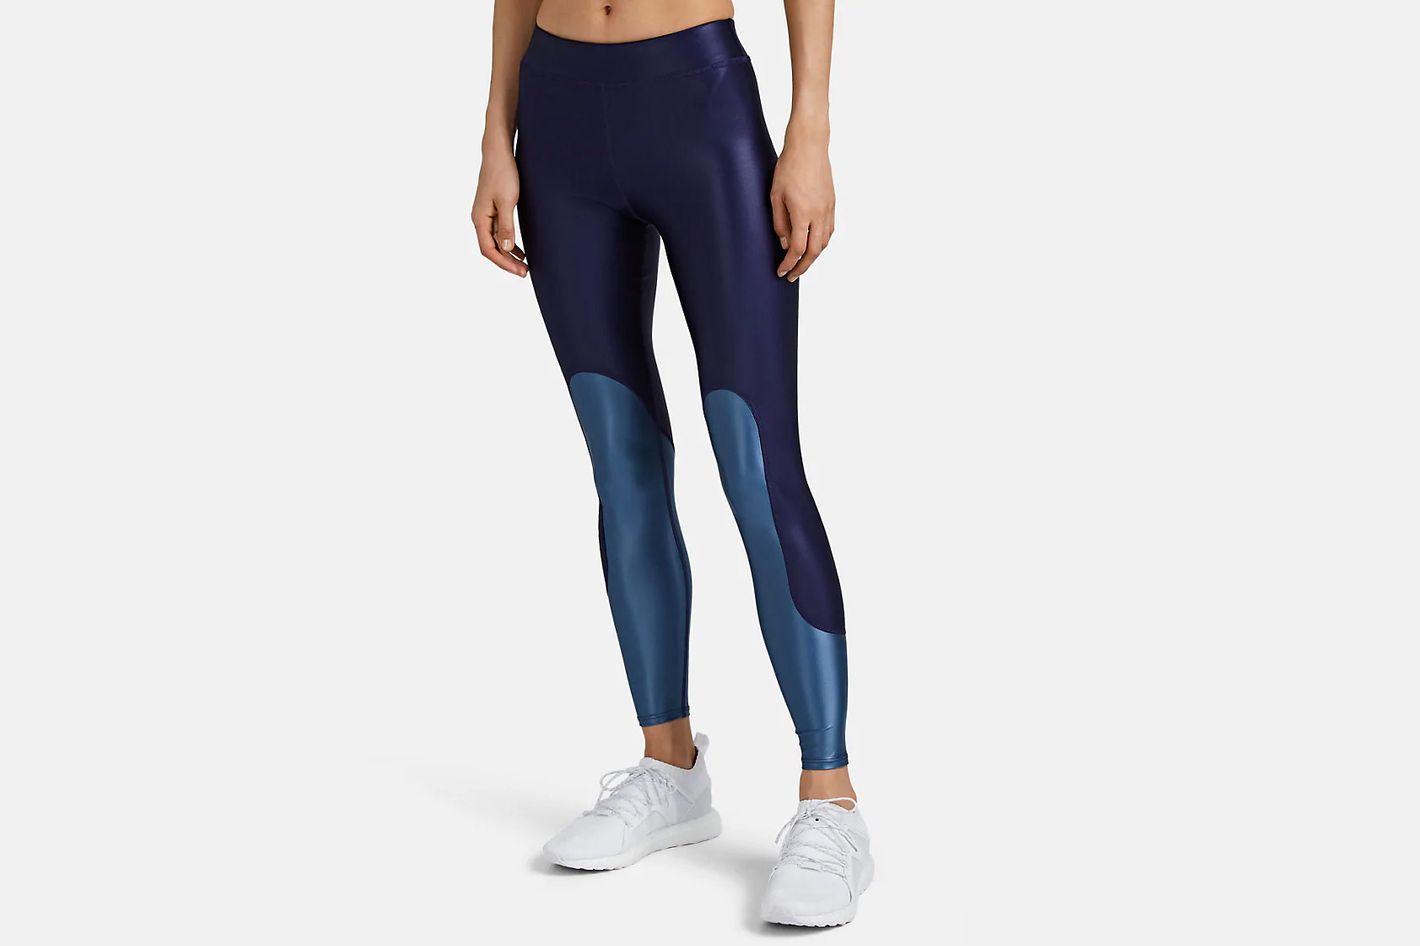 Barneys New York x Tracy Anderson Colorblocked Leggings